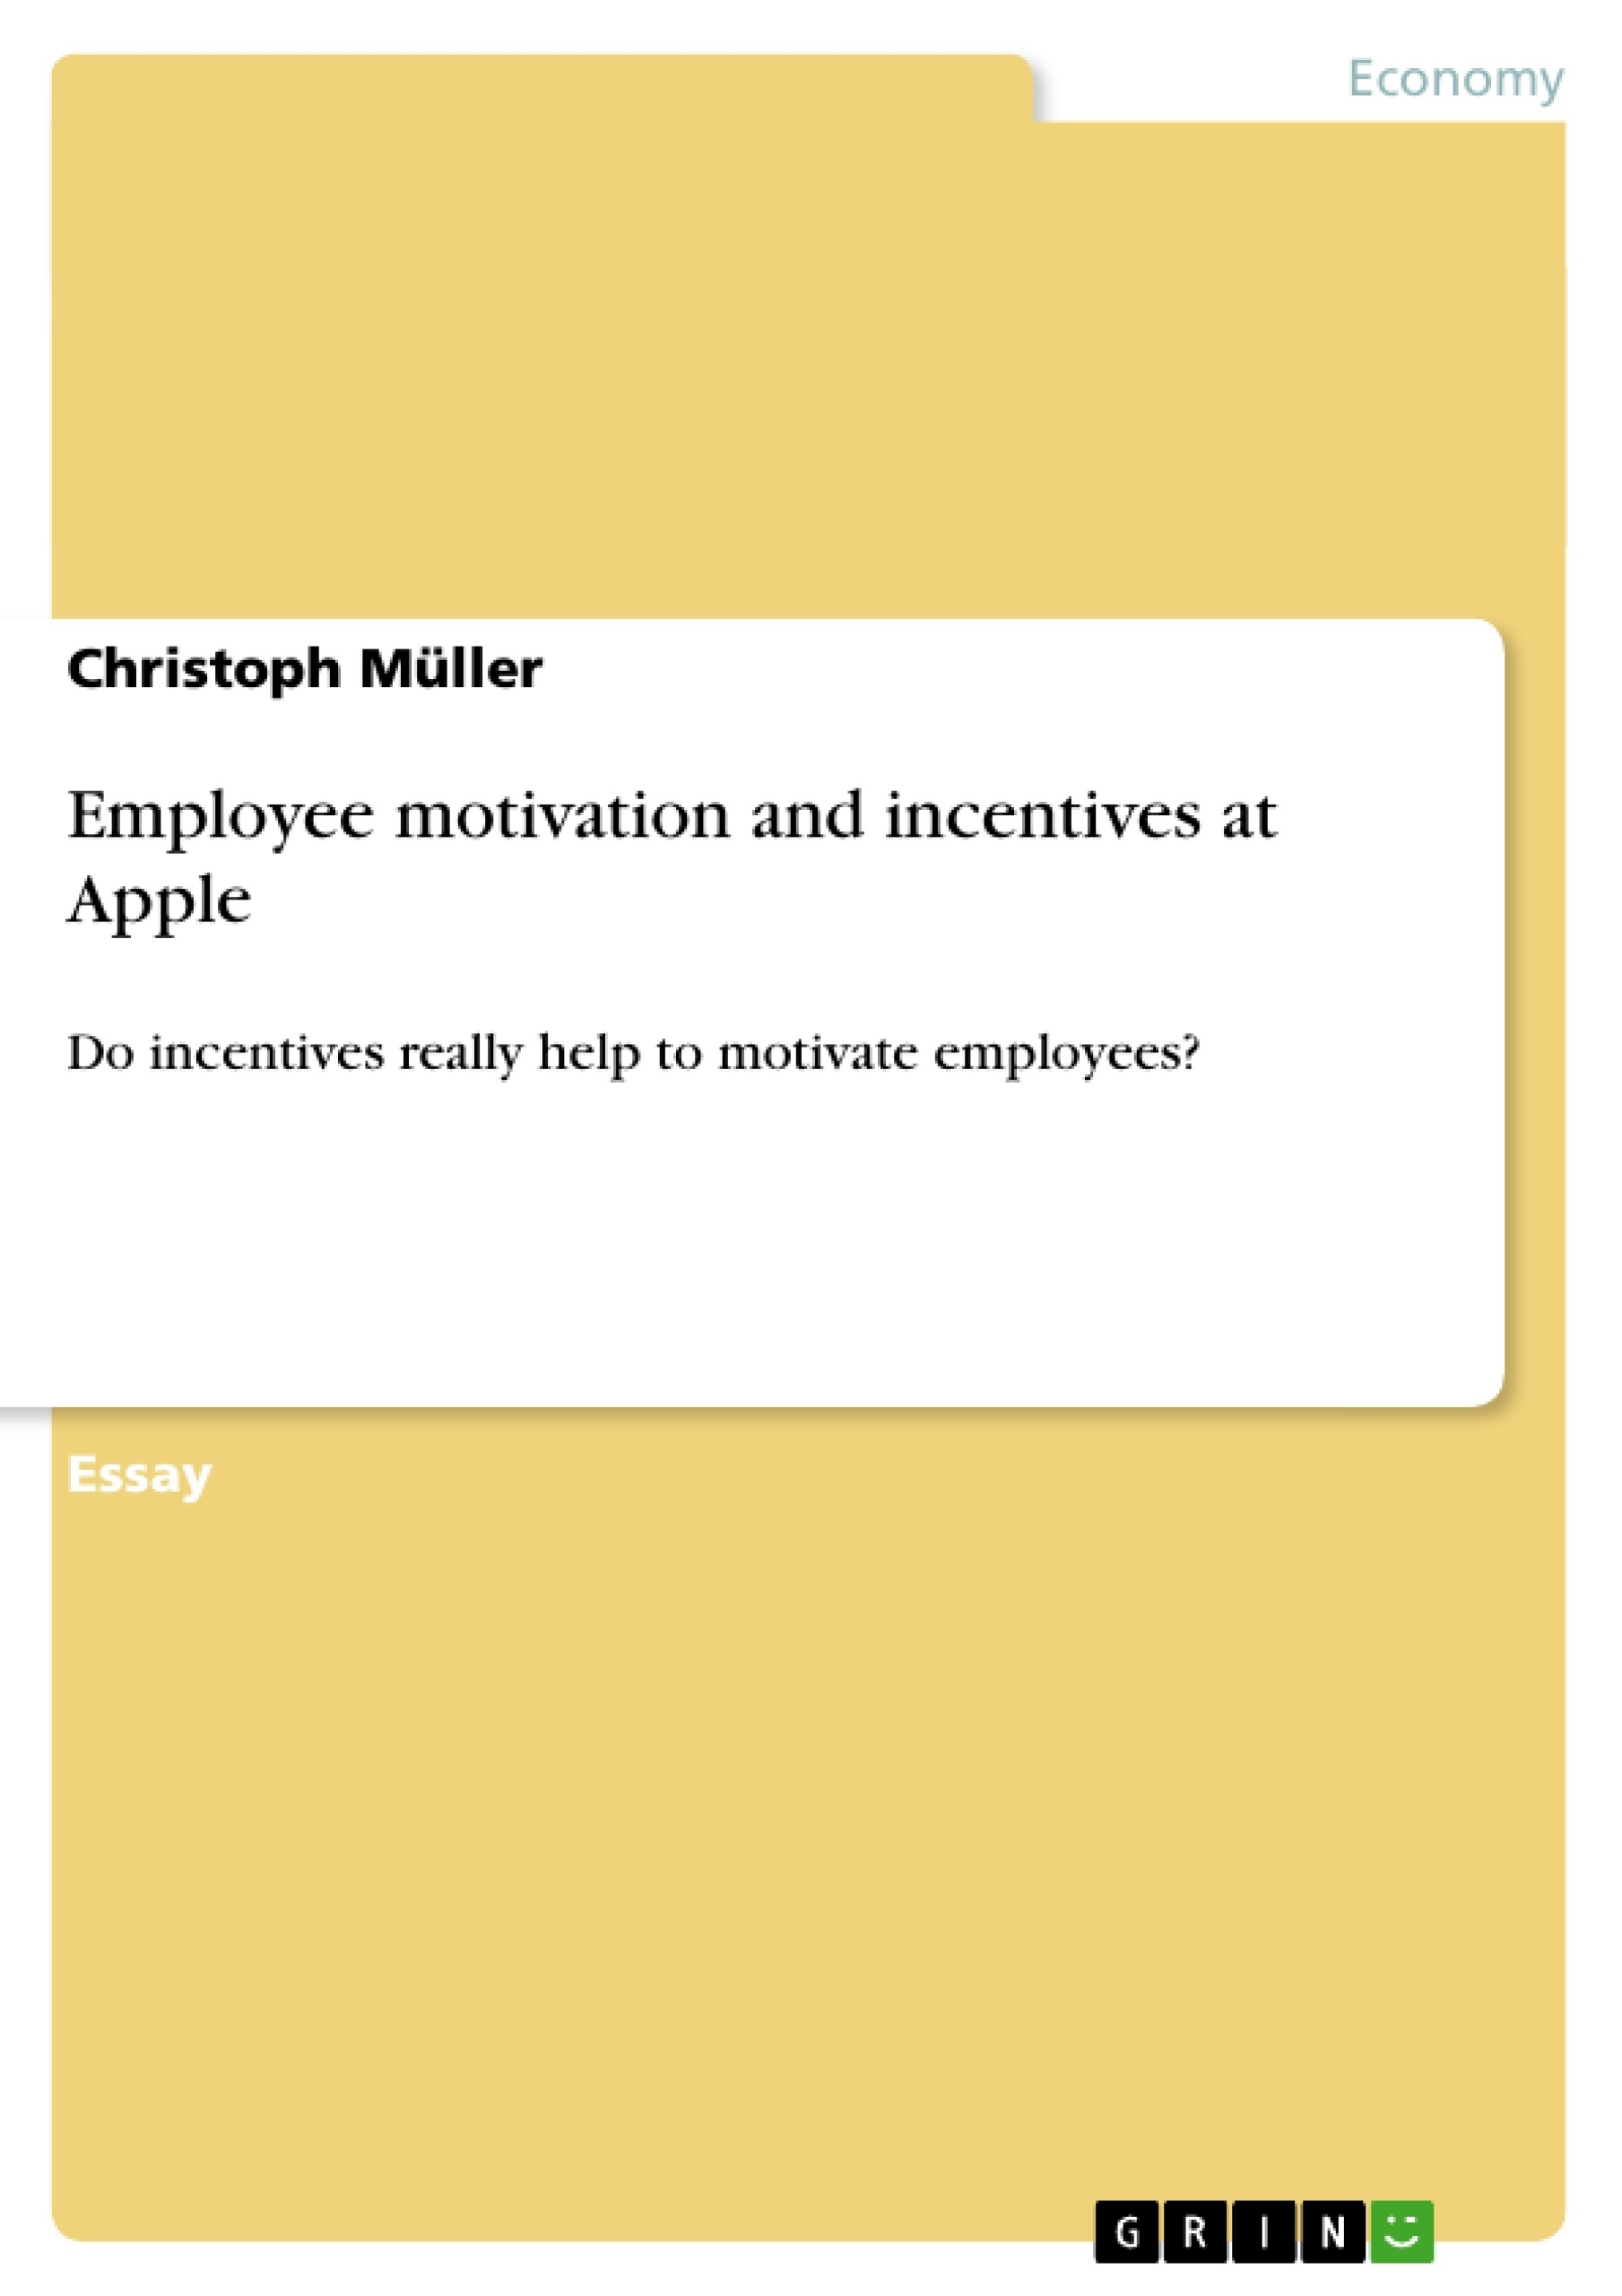 Title: Employee motivation and incentives at Apple